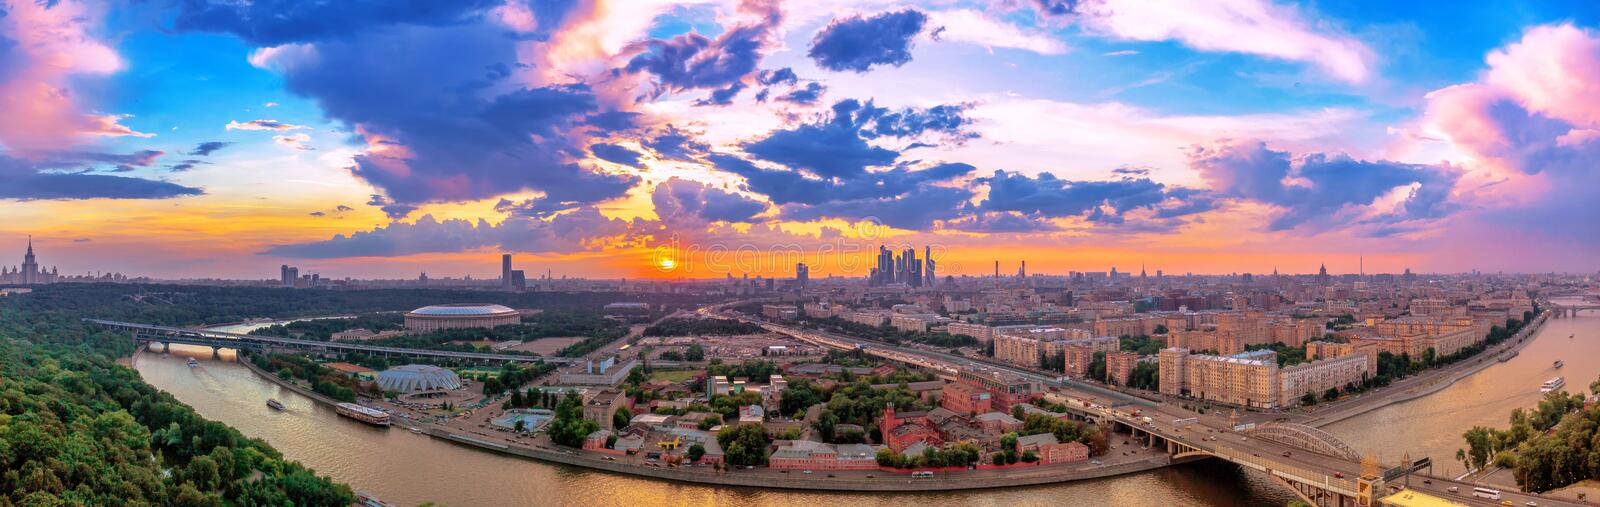 Wde angle vibrant panoramic view of sunset above Moscow city and cloud reflections in river with traveling boats and bridge stock photos